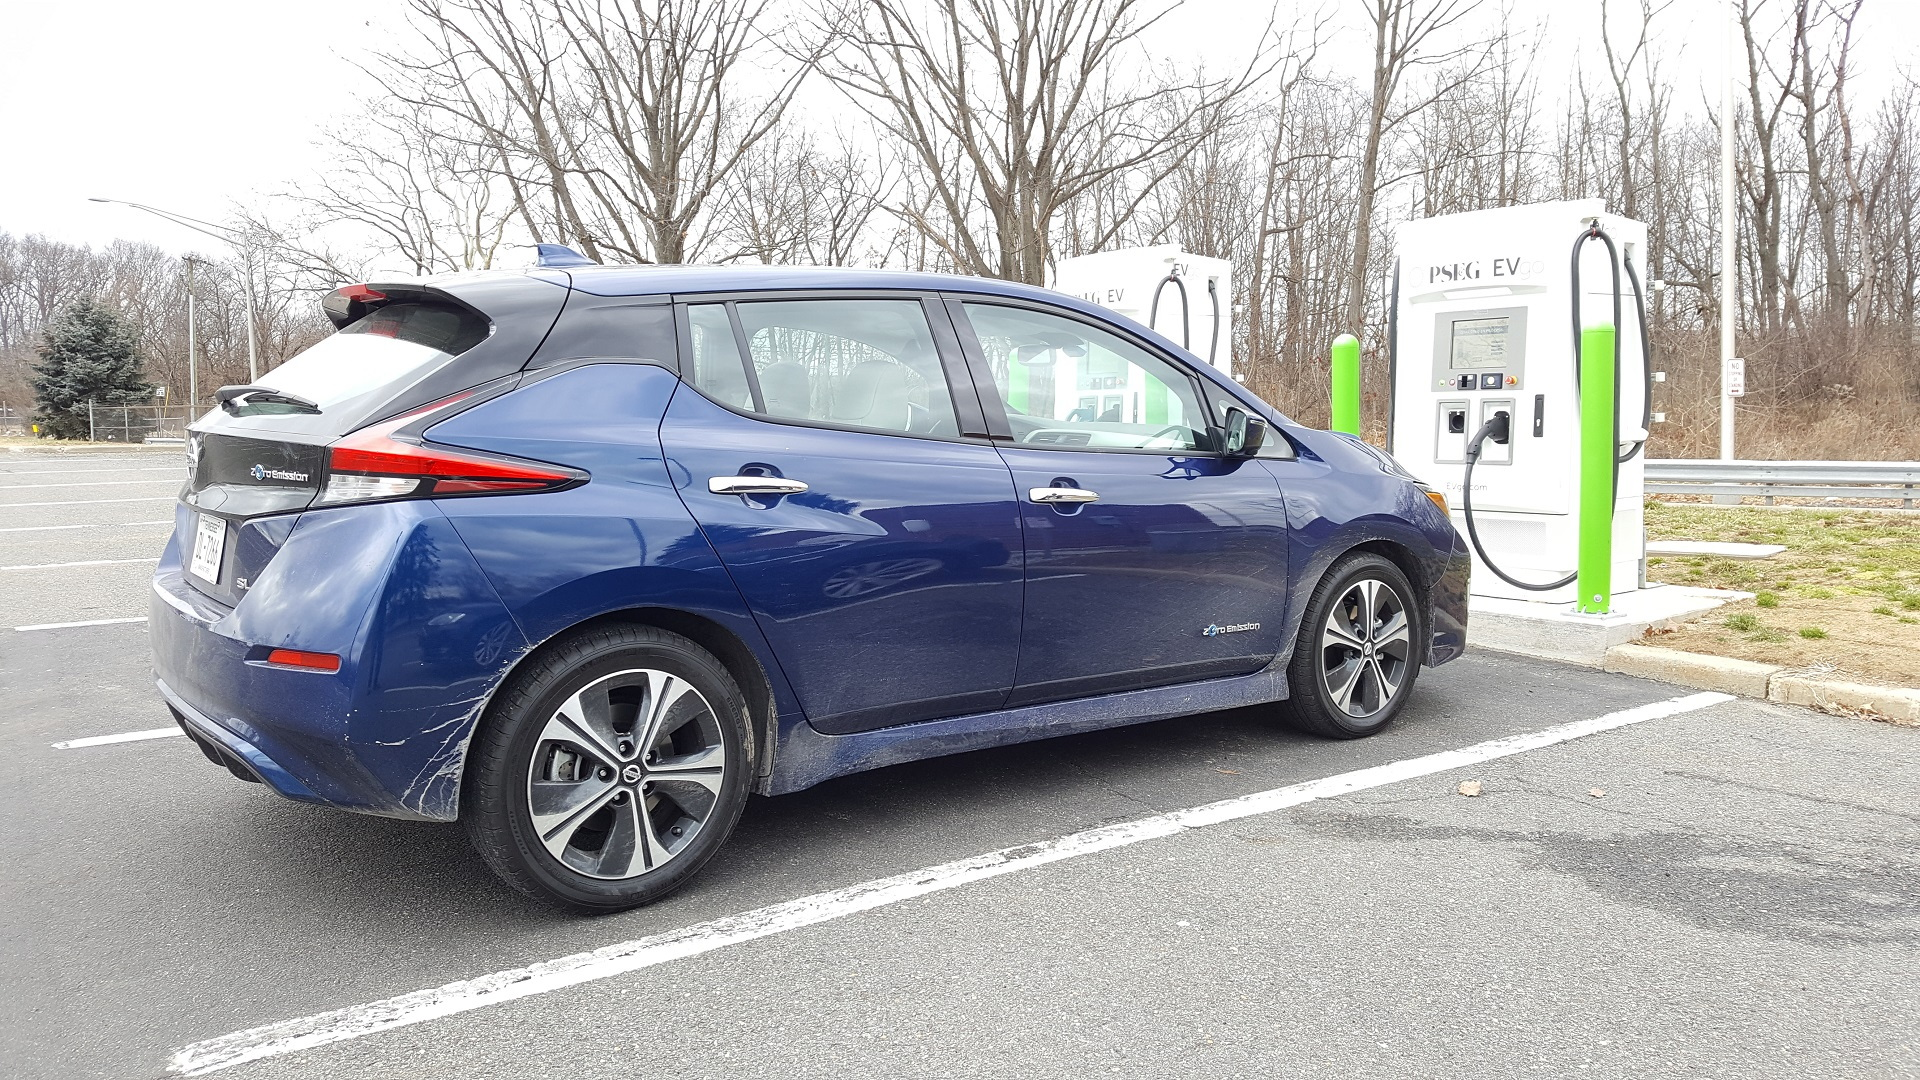 2018 Nissan Leaf with EVgo fast charger at NJ Turnpike Molly Pitcher travel plaza, Feb 2018